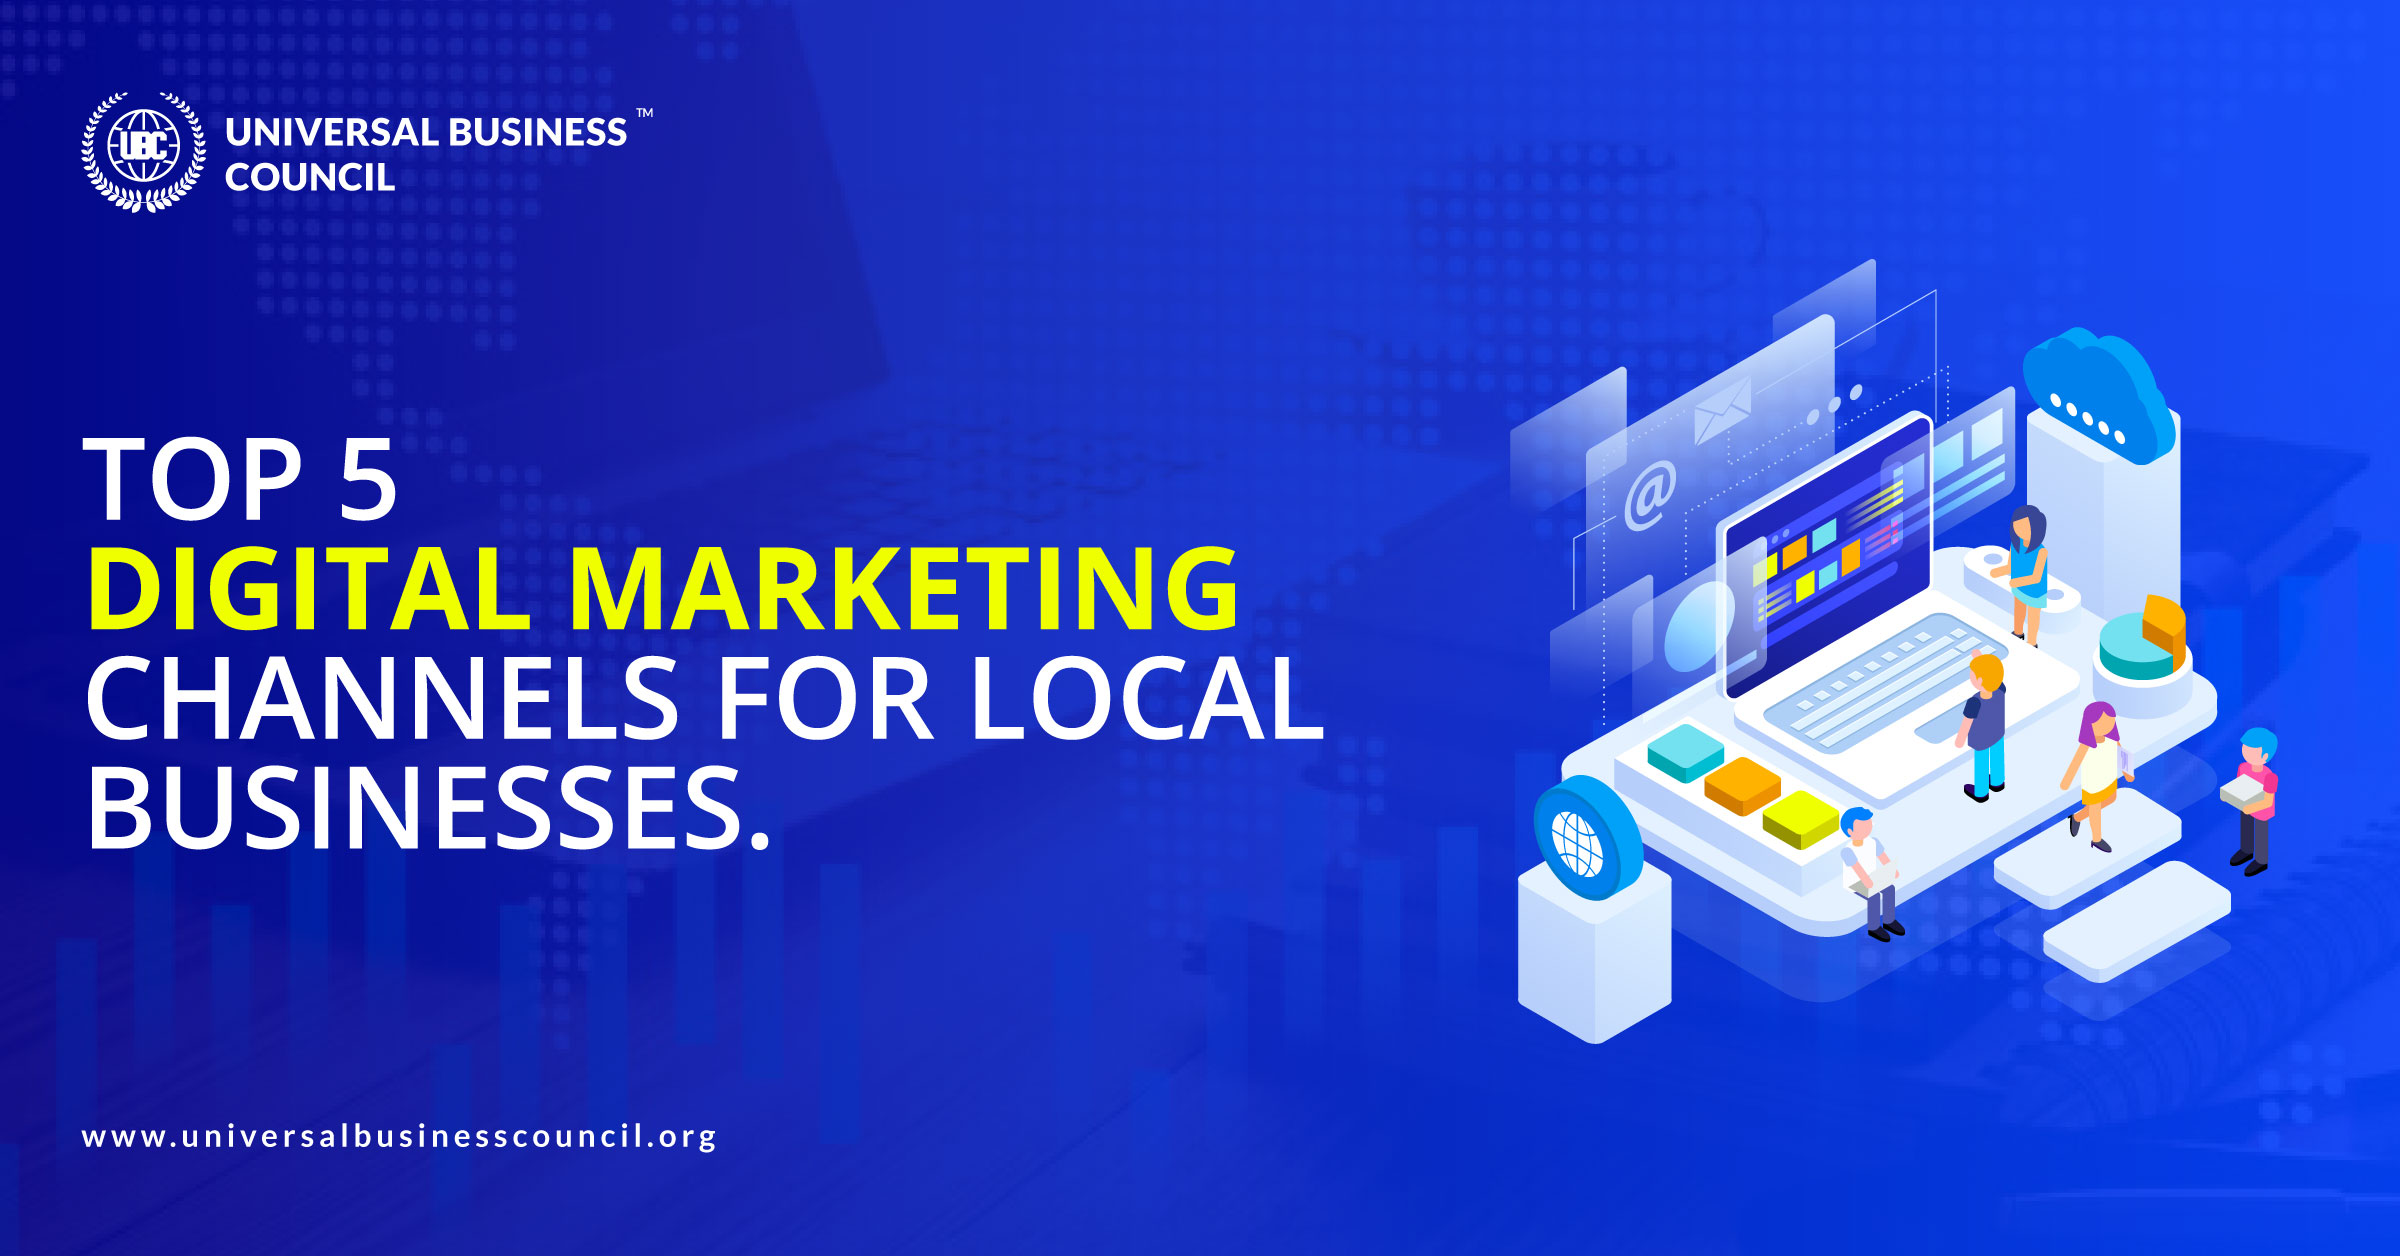 Top-5-Digital-Marketing-Channels-For-Local-Businesses